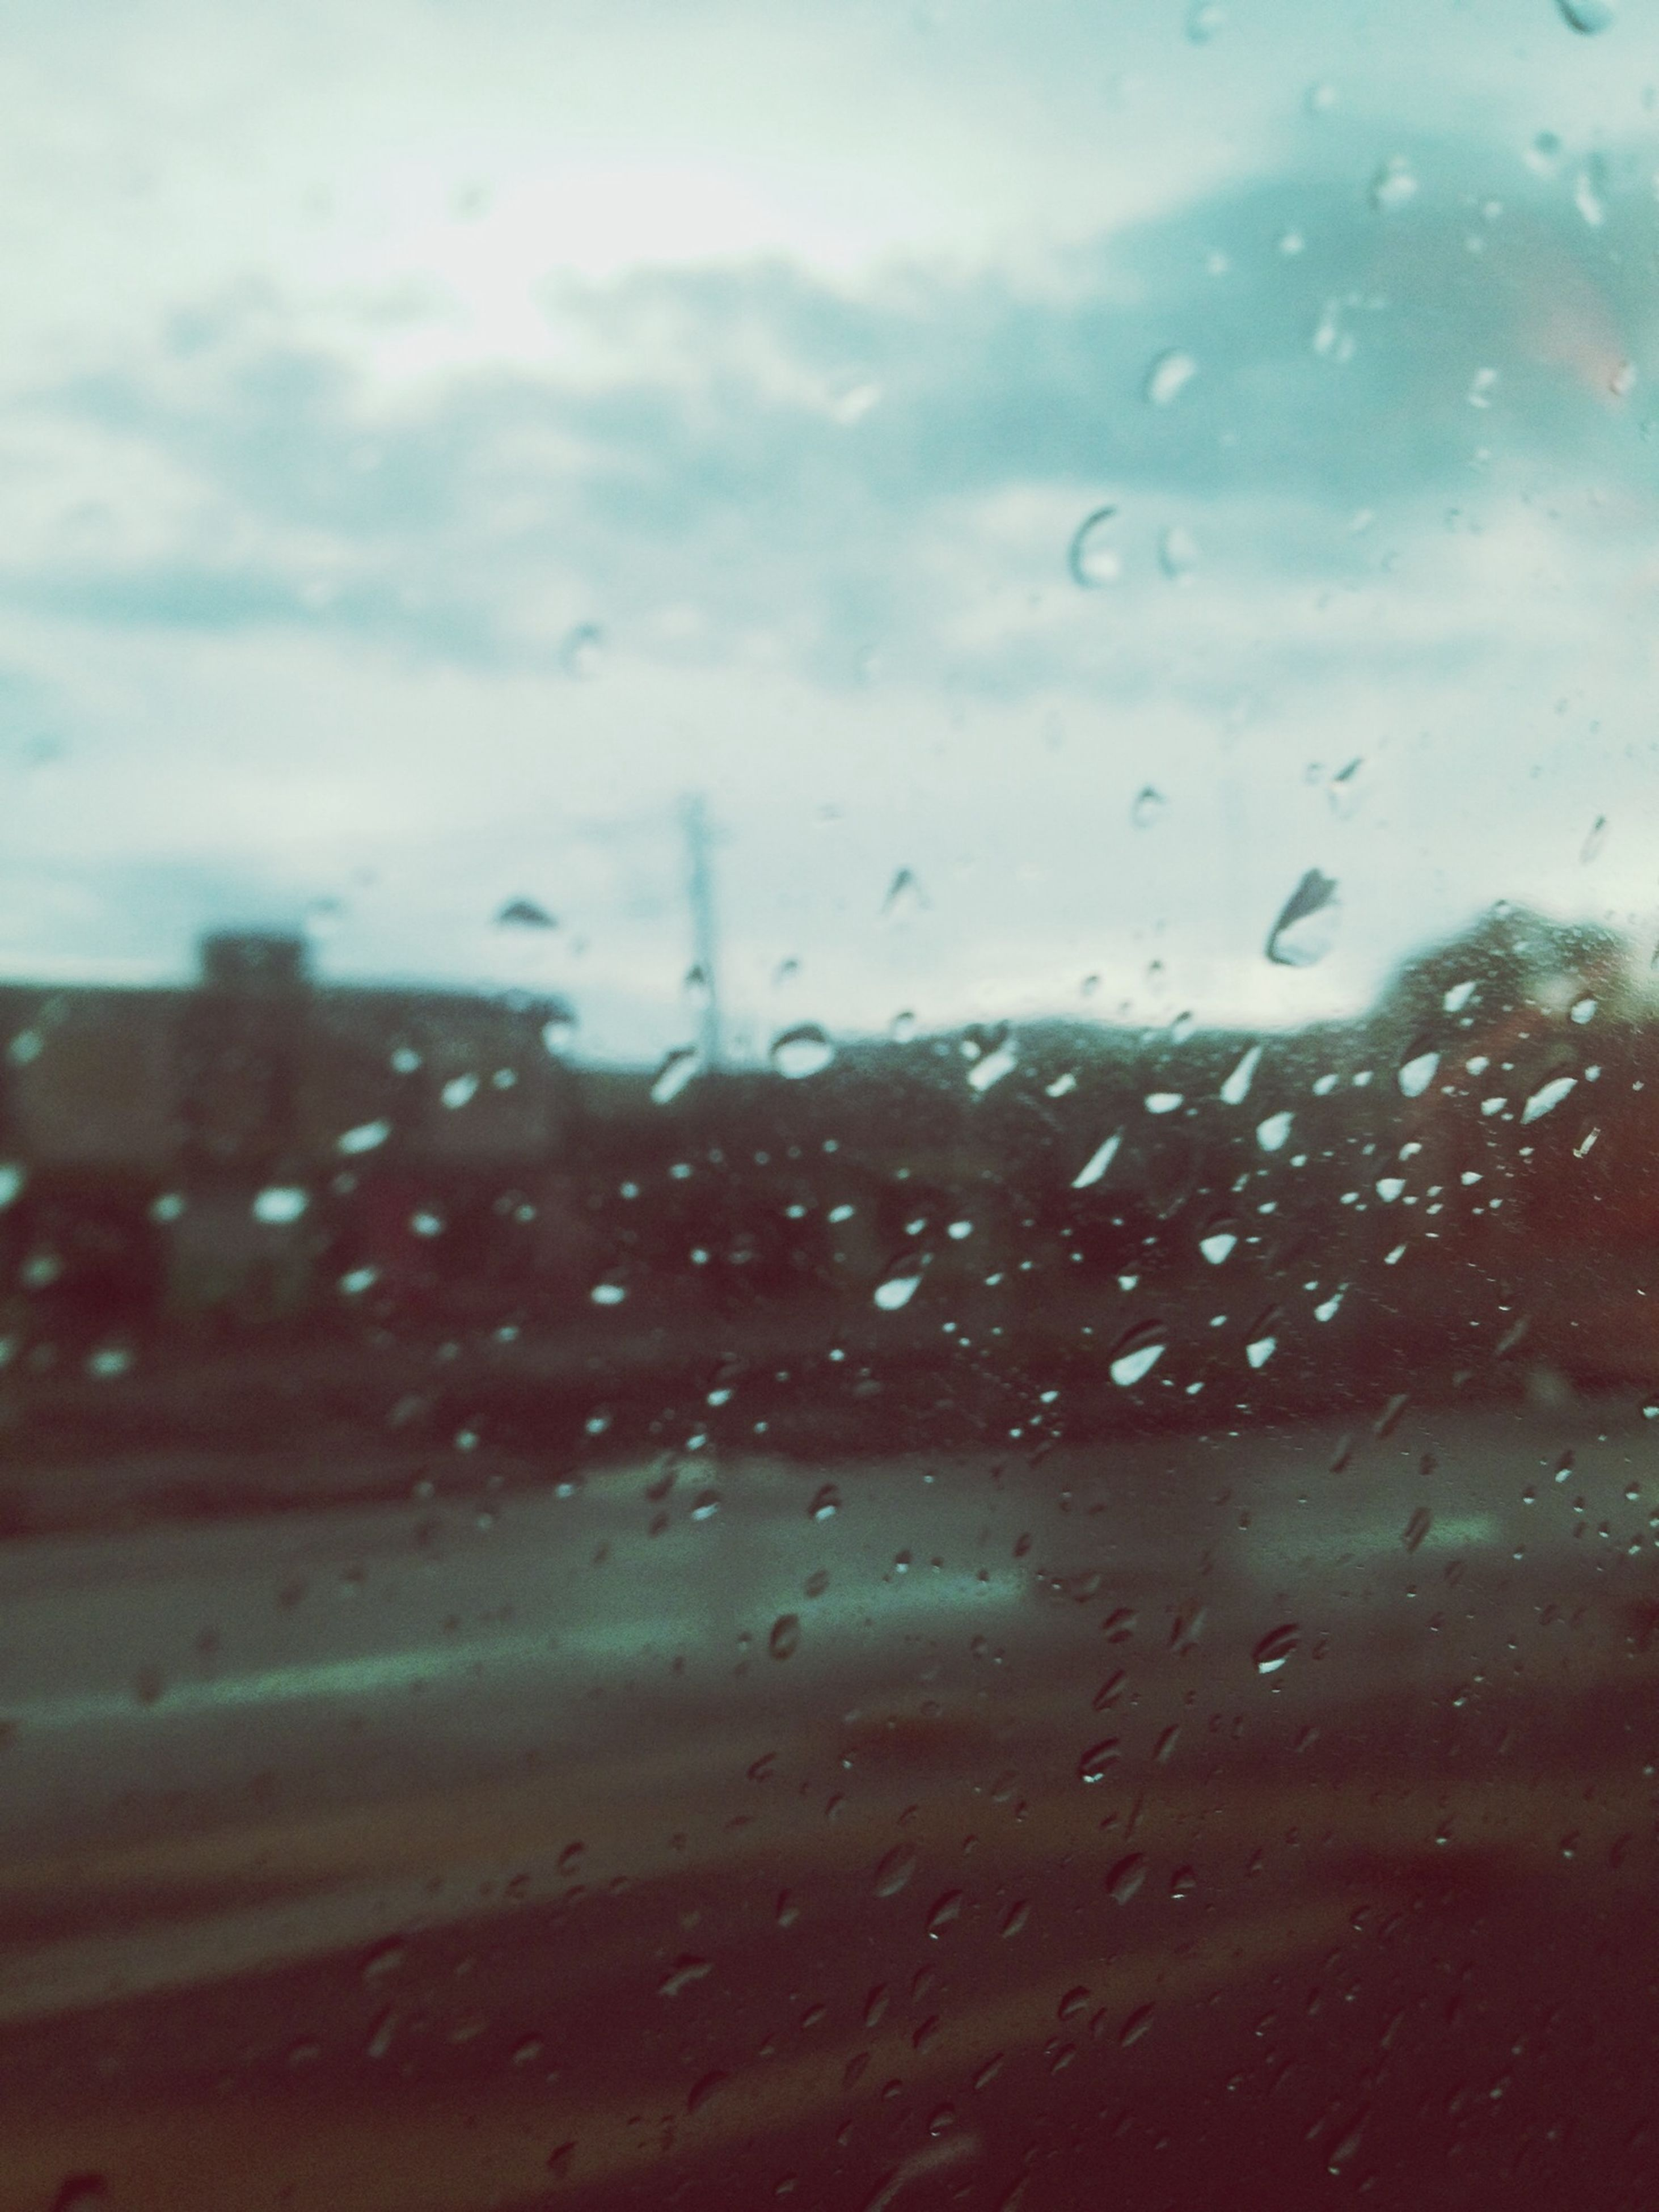 drop, wet, window, transparent, glass - material, rain, water, raindrop, weather, indoors, sky, season, glass, transportation, vehicle interior, car, full frame, backgrounds, focus on foreground, cloud - sky